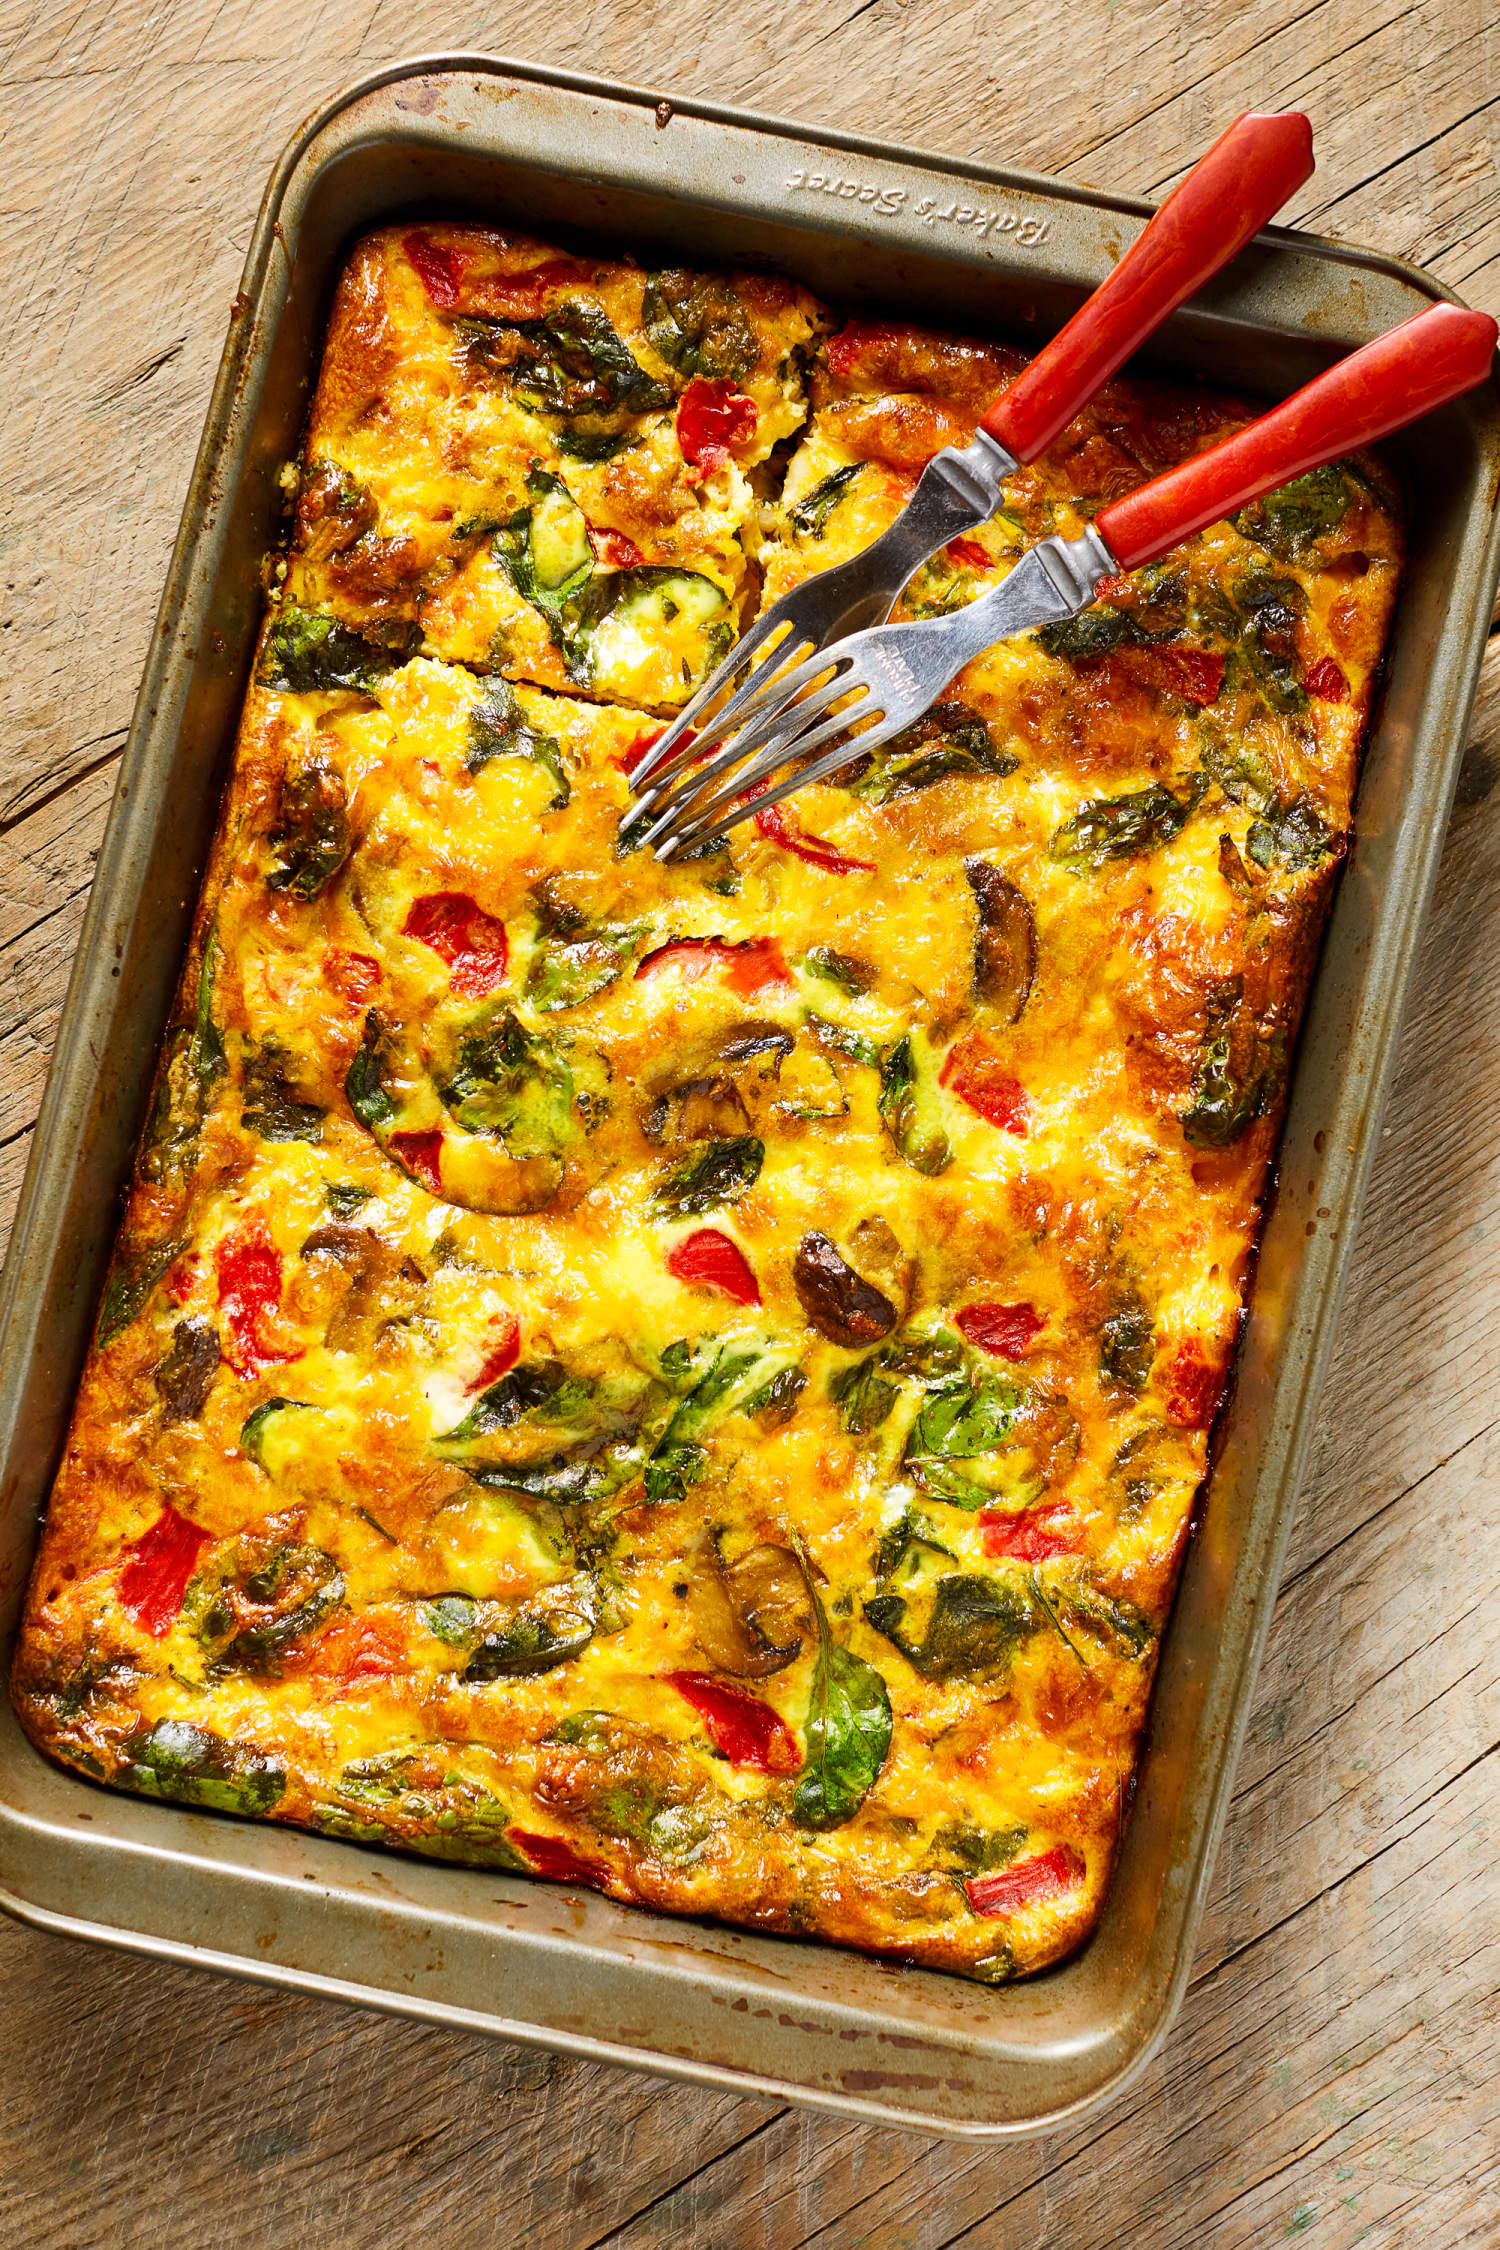 The One Thing That Makes Any Egg Casserole *Much* Better